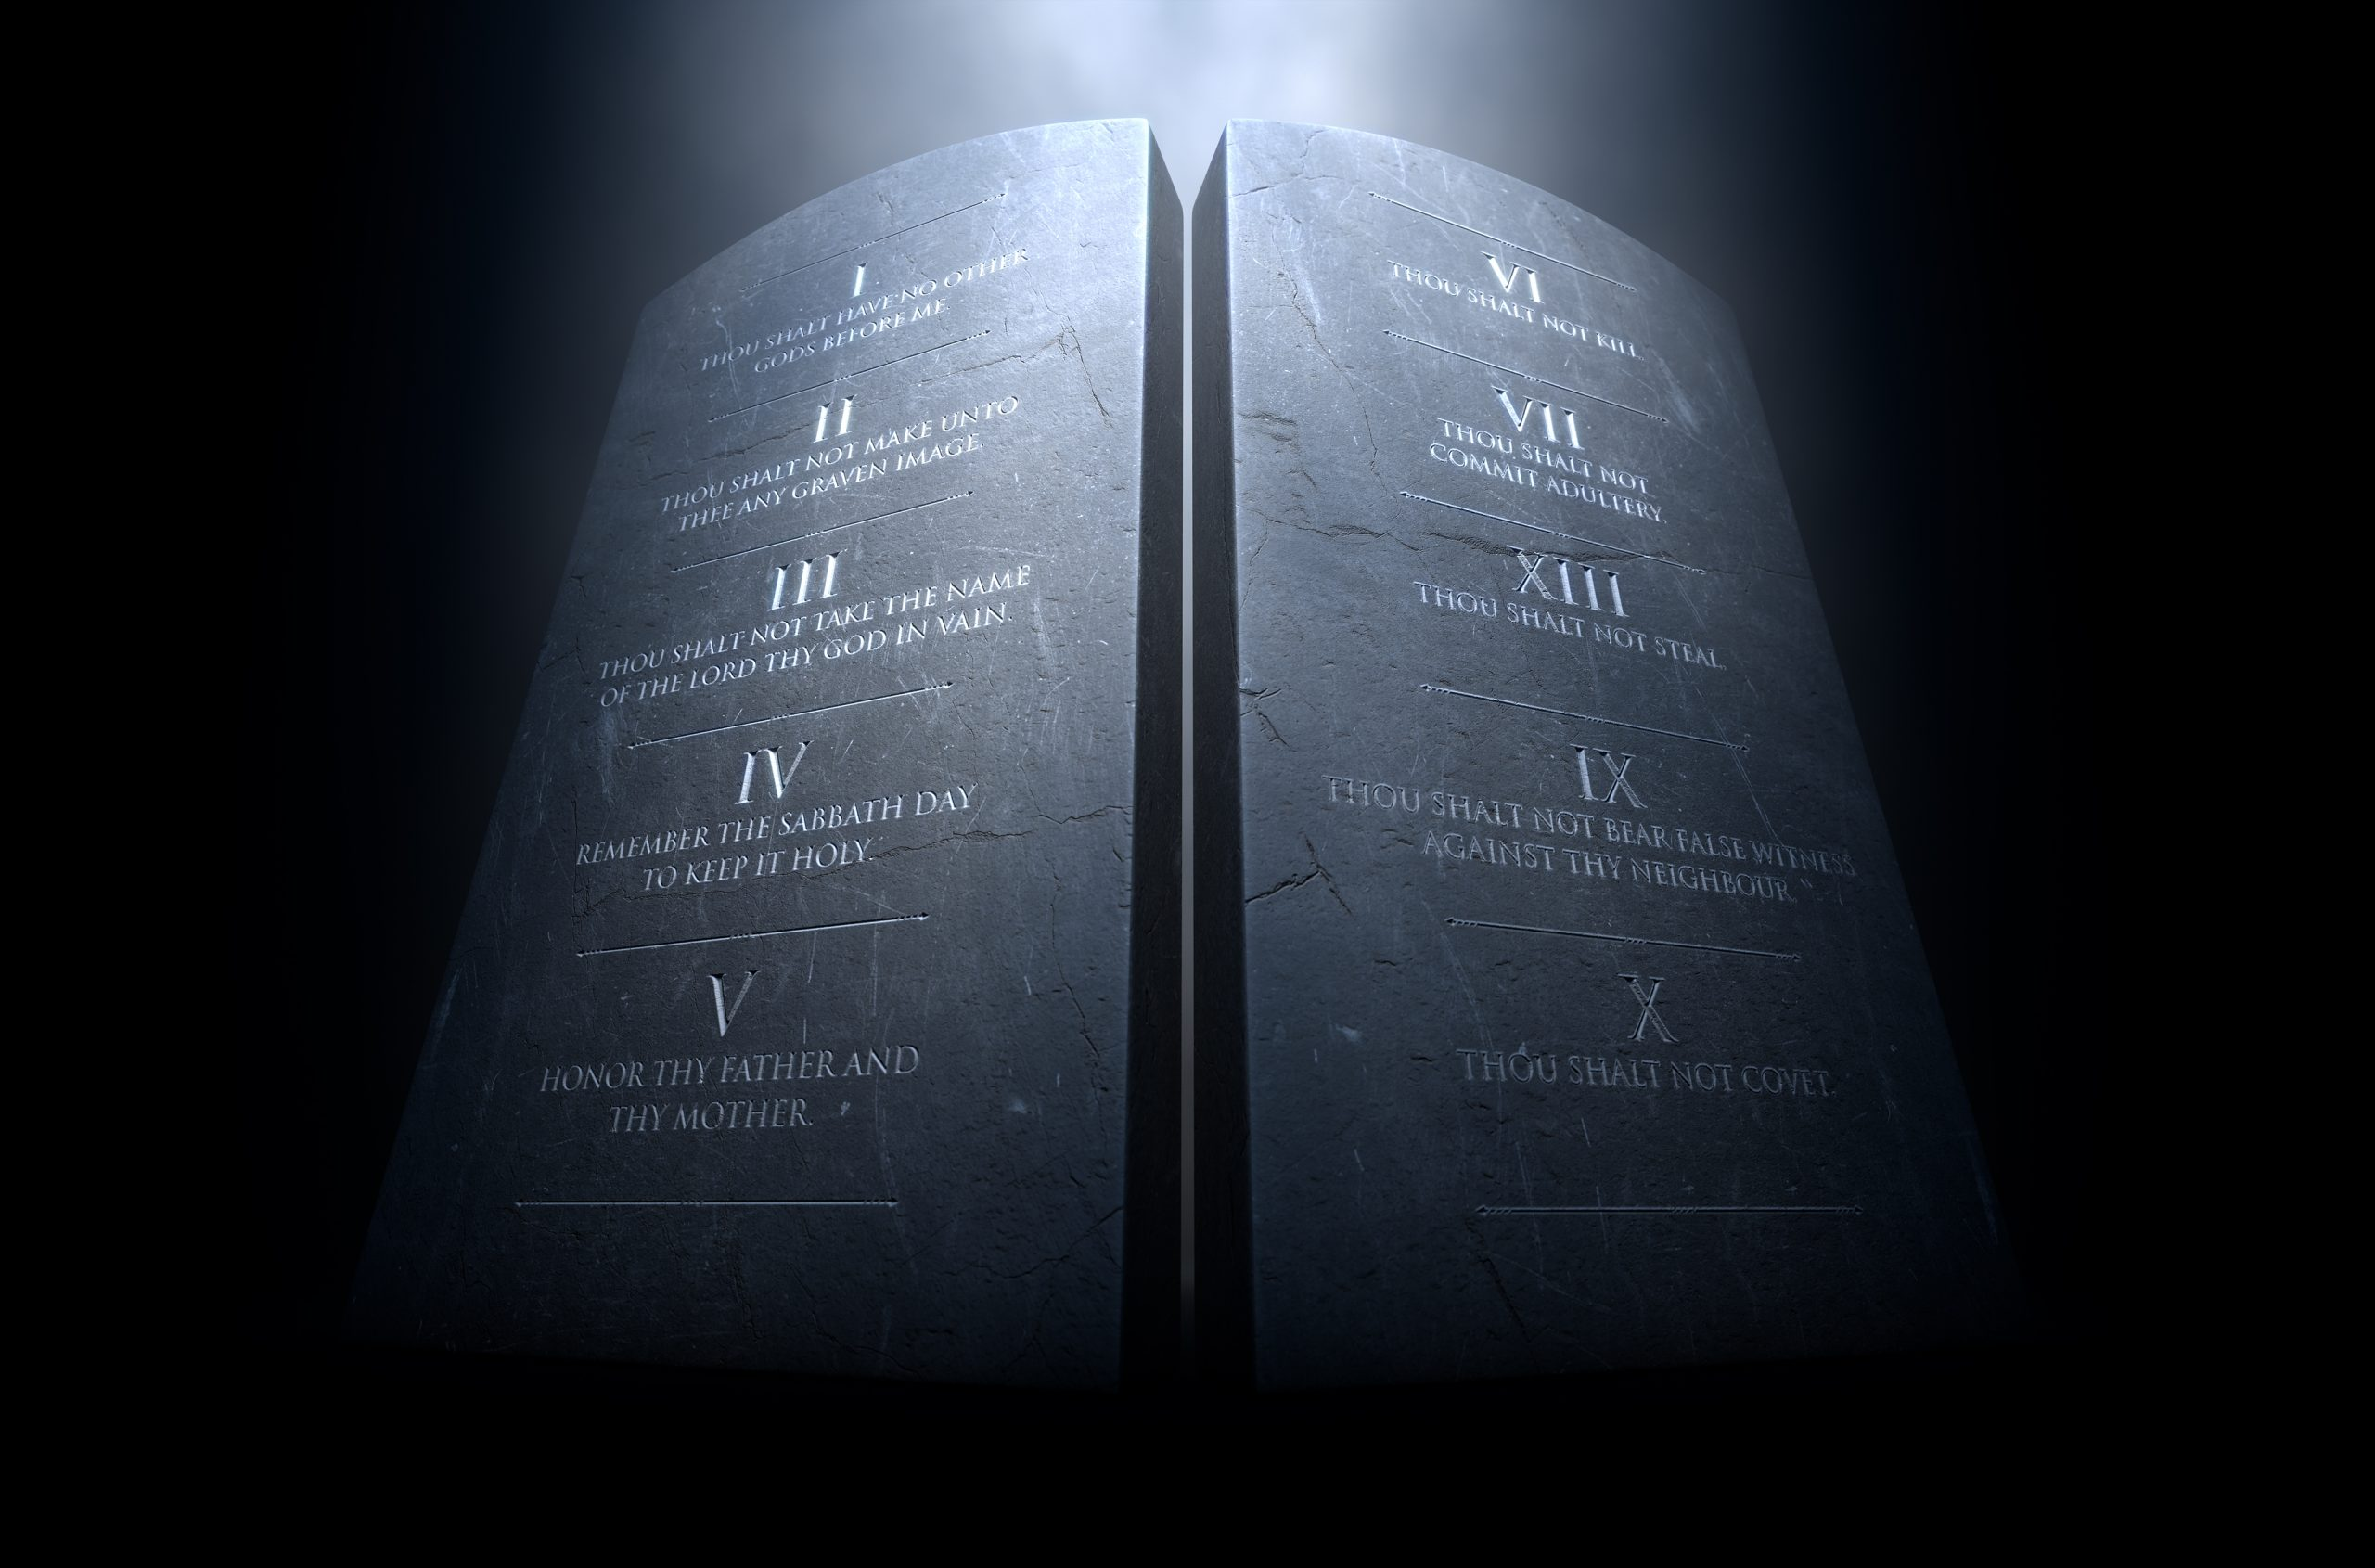 Ten Commandments Stones